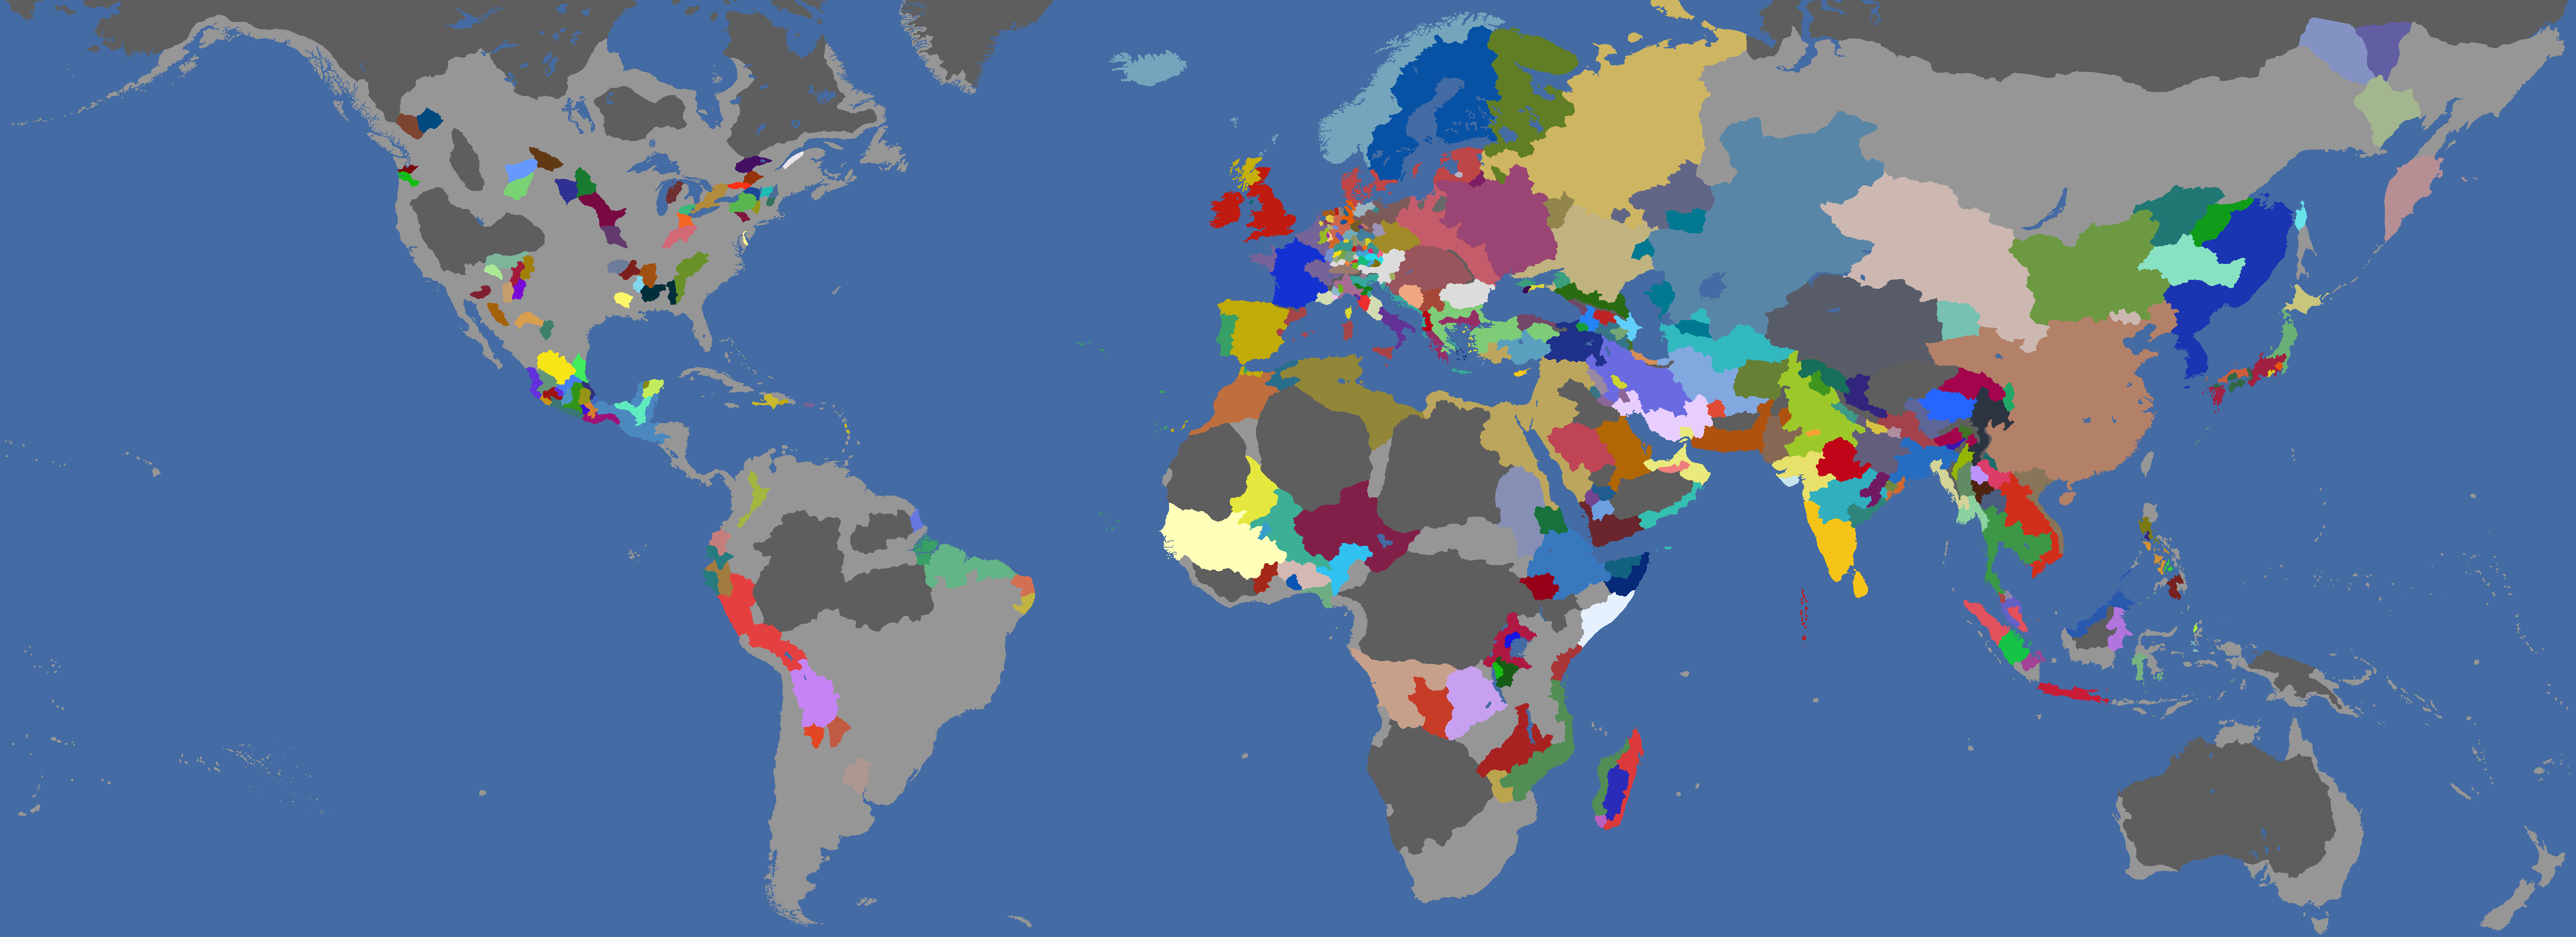 eu4_map_BRI_1508_09_03_1.png